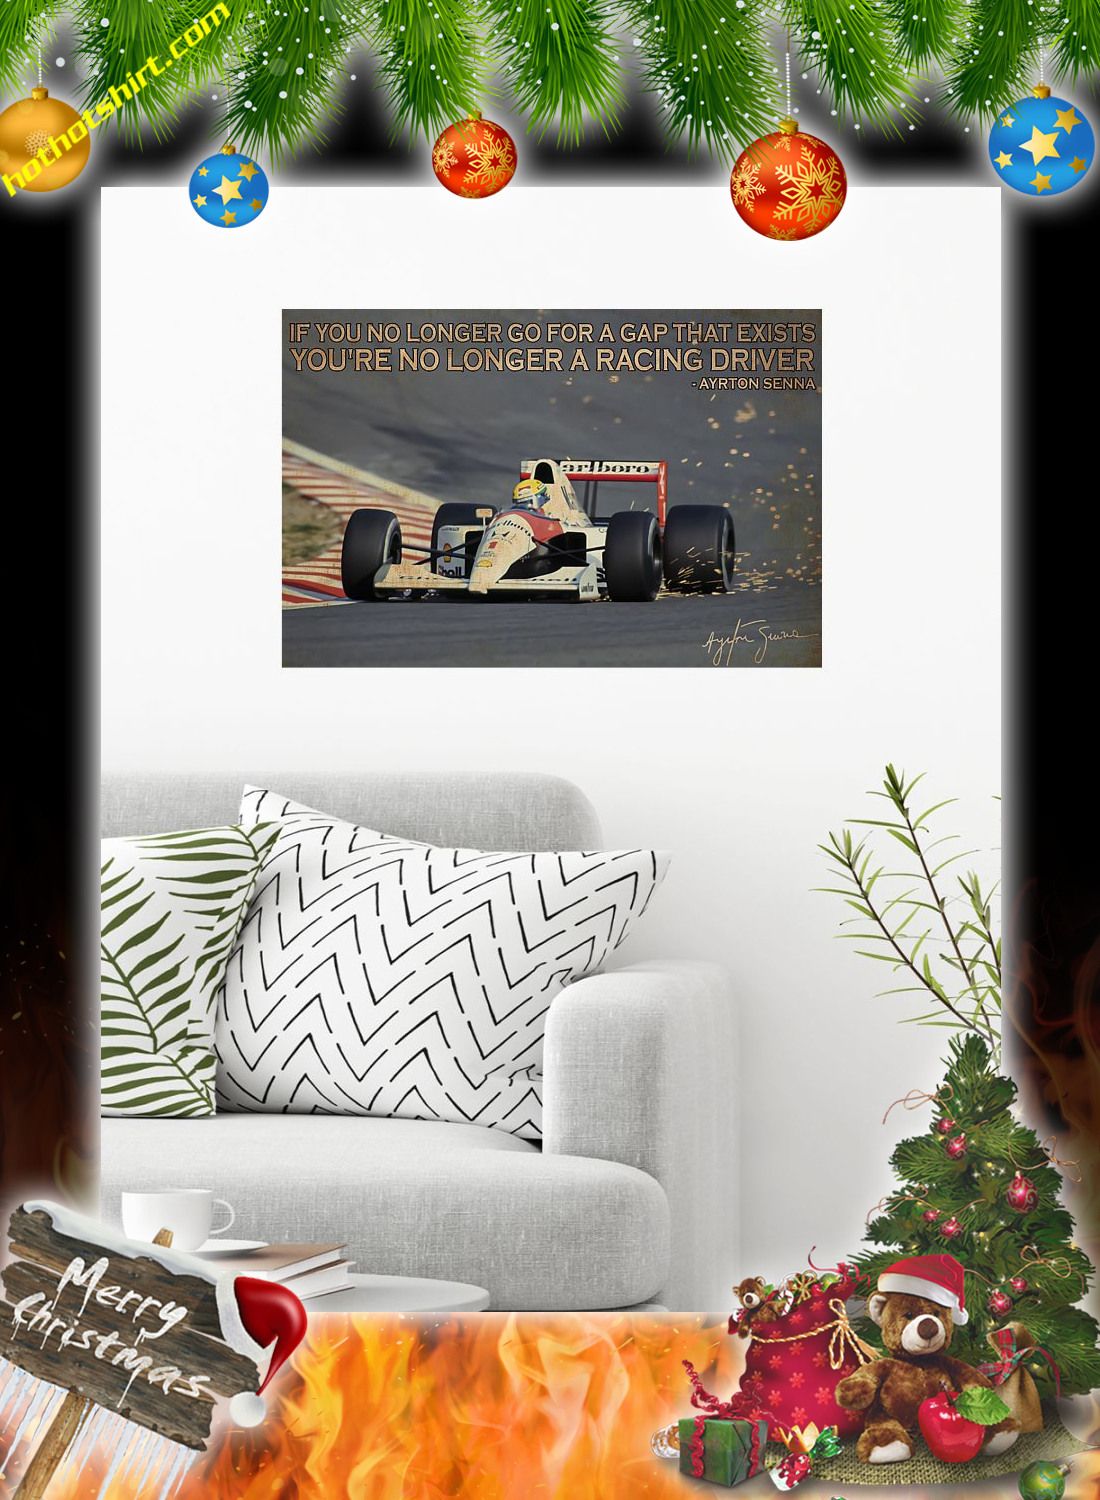 If you longer go for a gap that exists ayrton senna poster 1